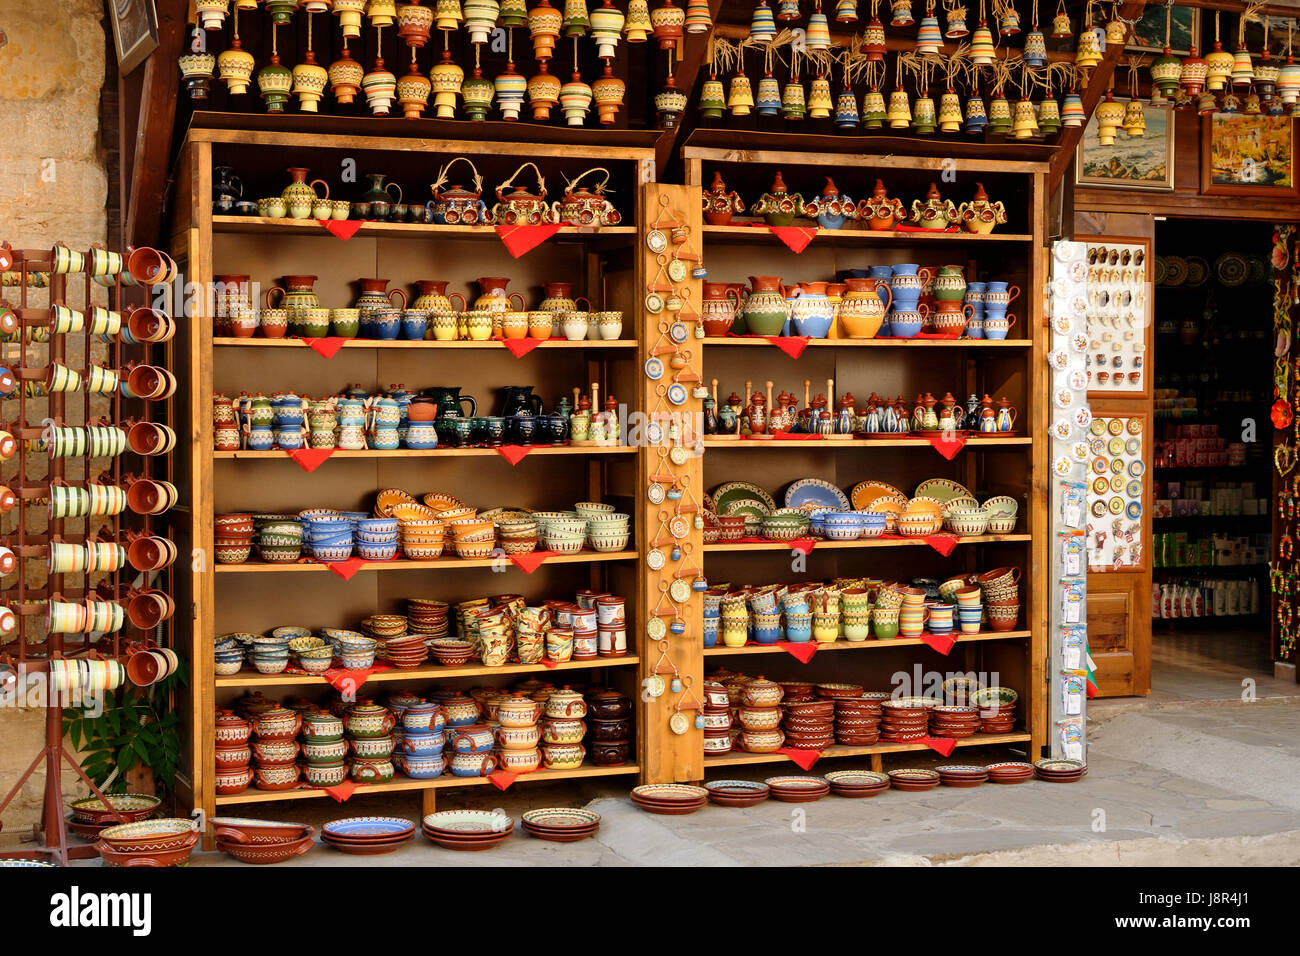 SOZOPOL, BULGARIA - AUGUST 15, 2011: Shop of traditional Bulgarian crockery in old town Sozopol. Sozopol is one - Stock Image